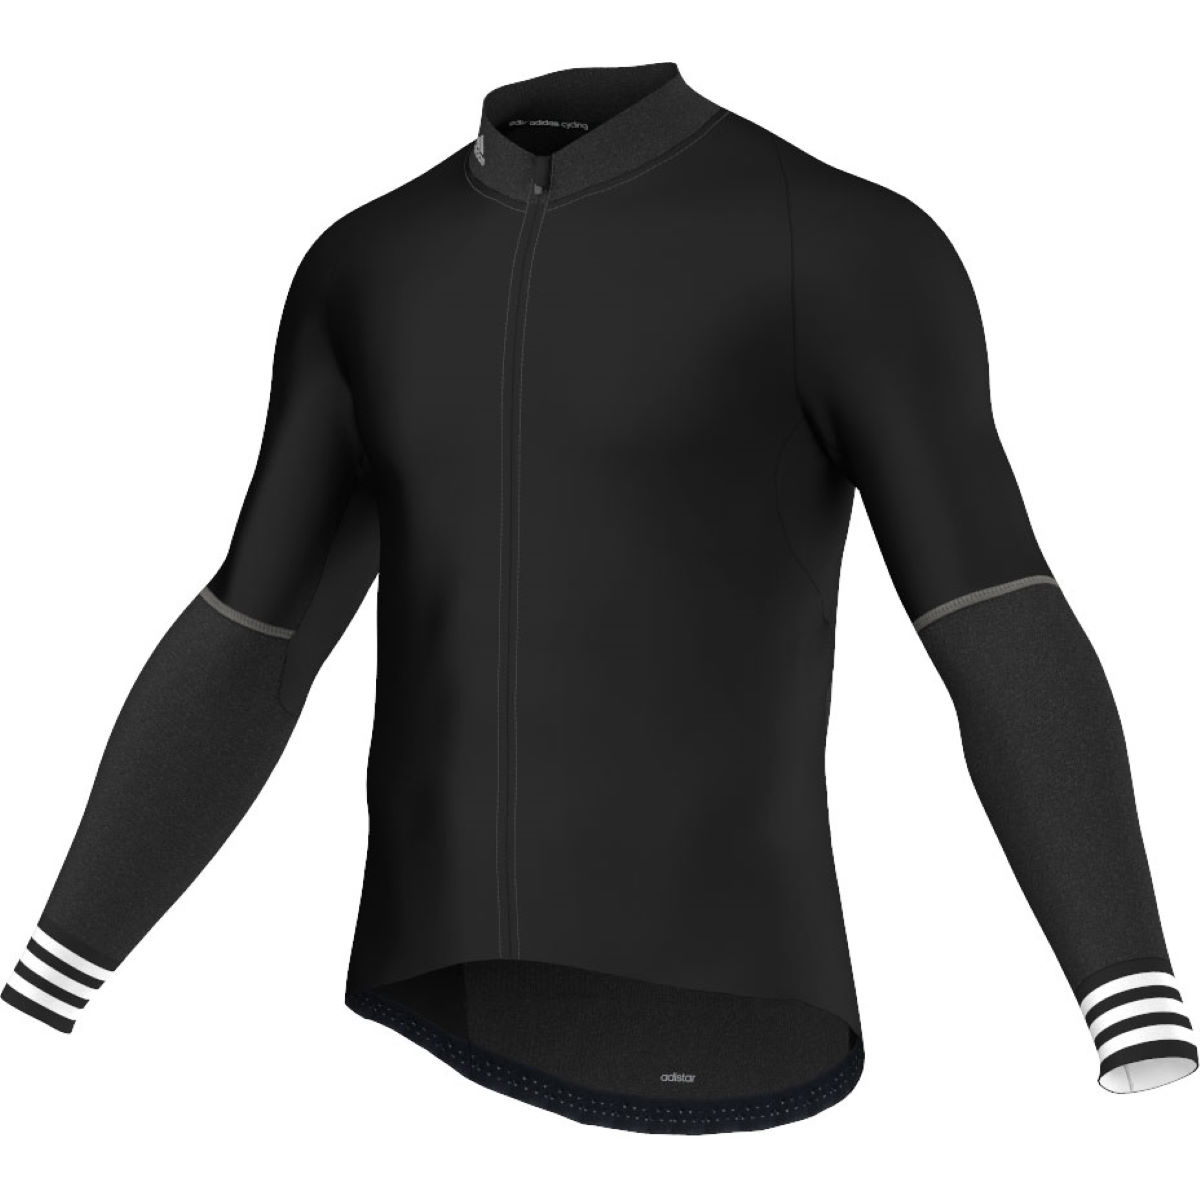 Adidas Cycling Adistar Belgements Long Sleeve Jersey